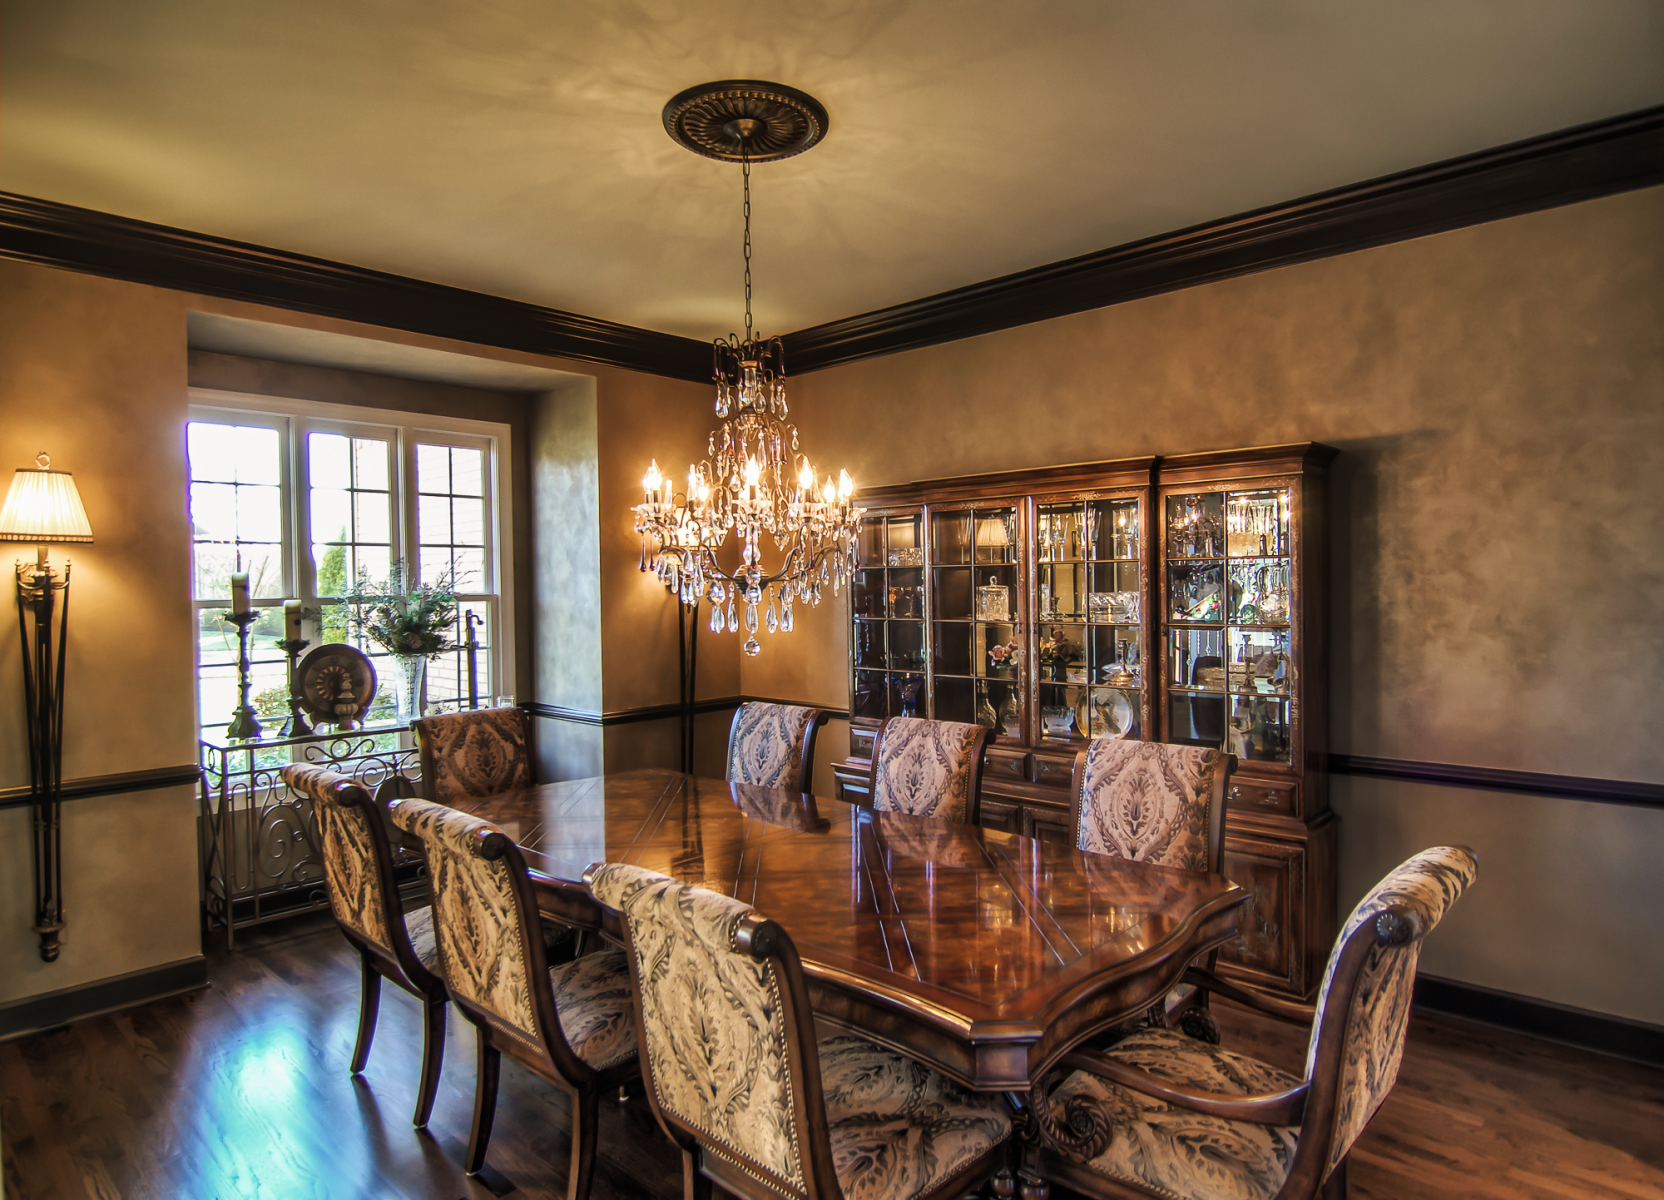 Custom blended Lusterstone for the wall finish and metallic bronze wood trim was used to achieve this elegant Franklin, TN customer's dining room makeover.